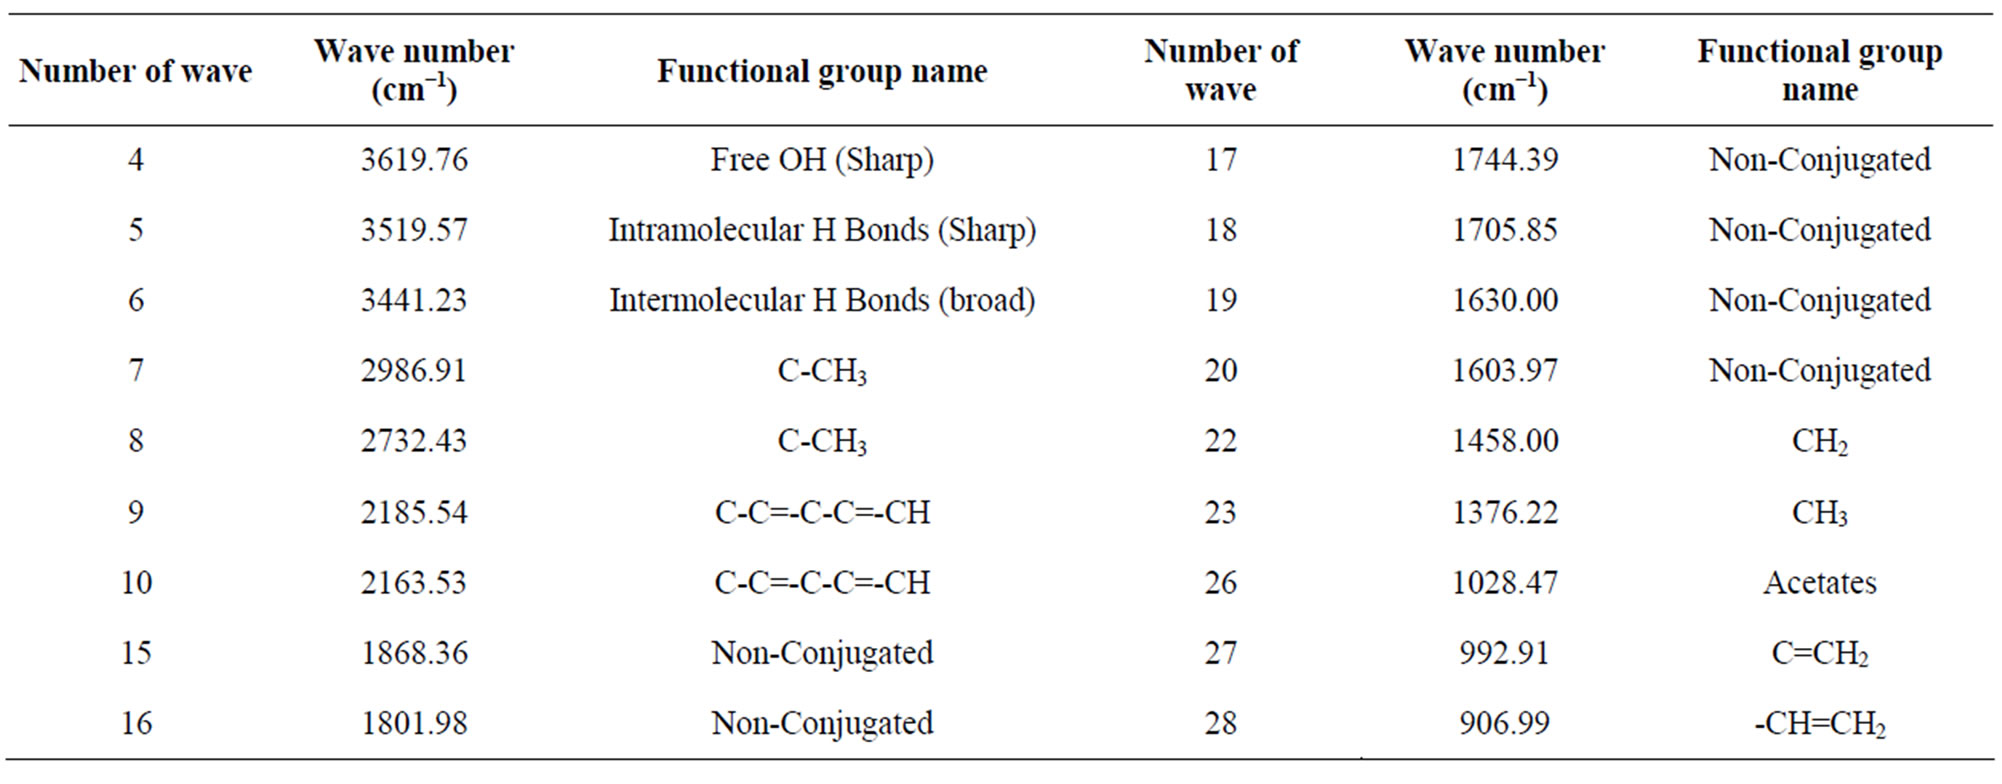 Polystyrene functional groups